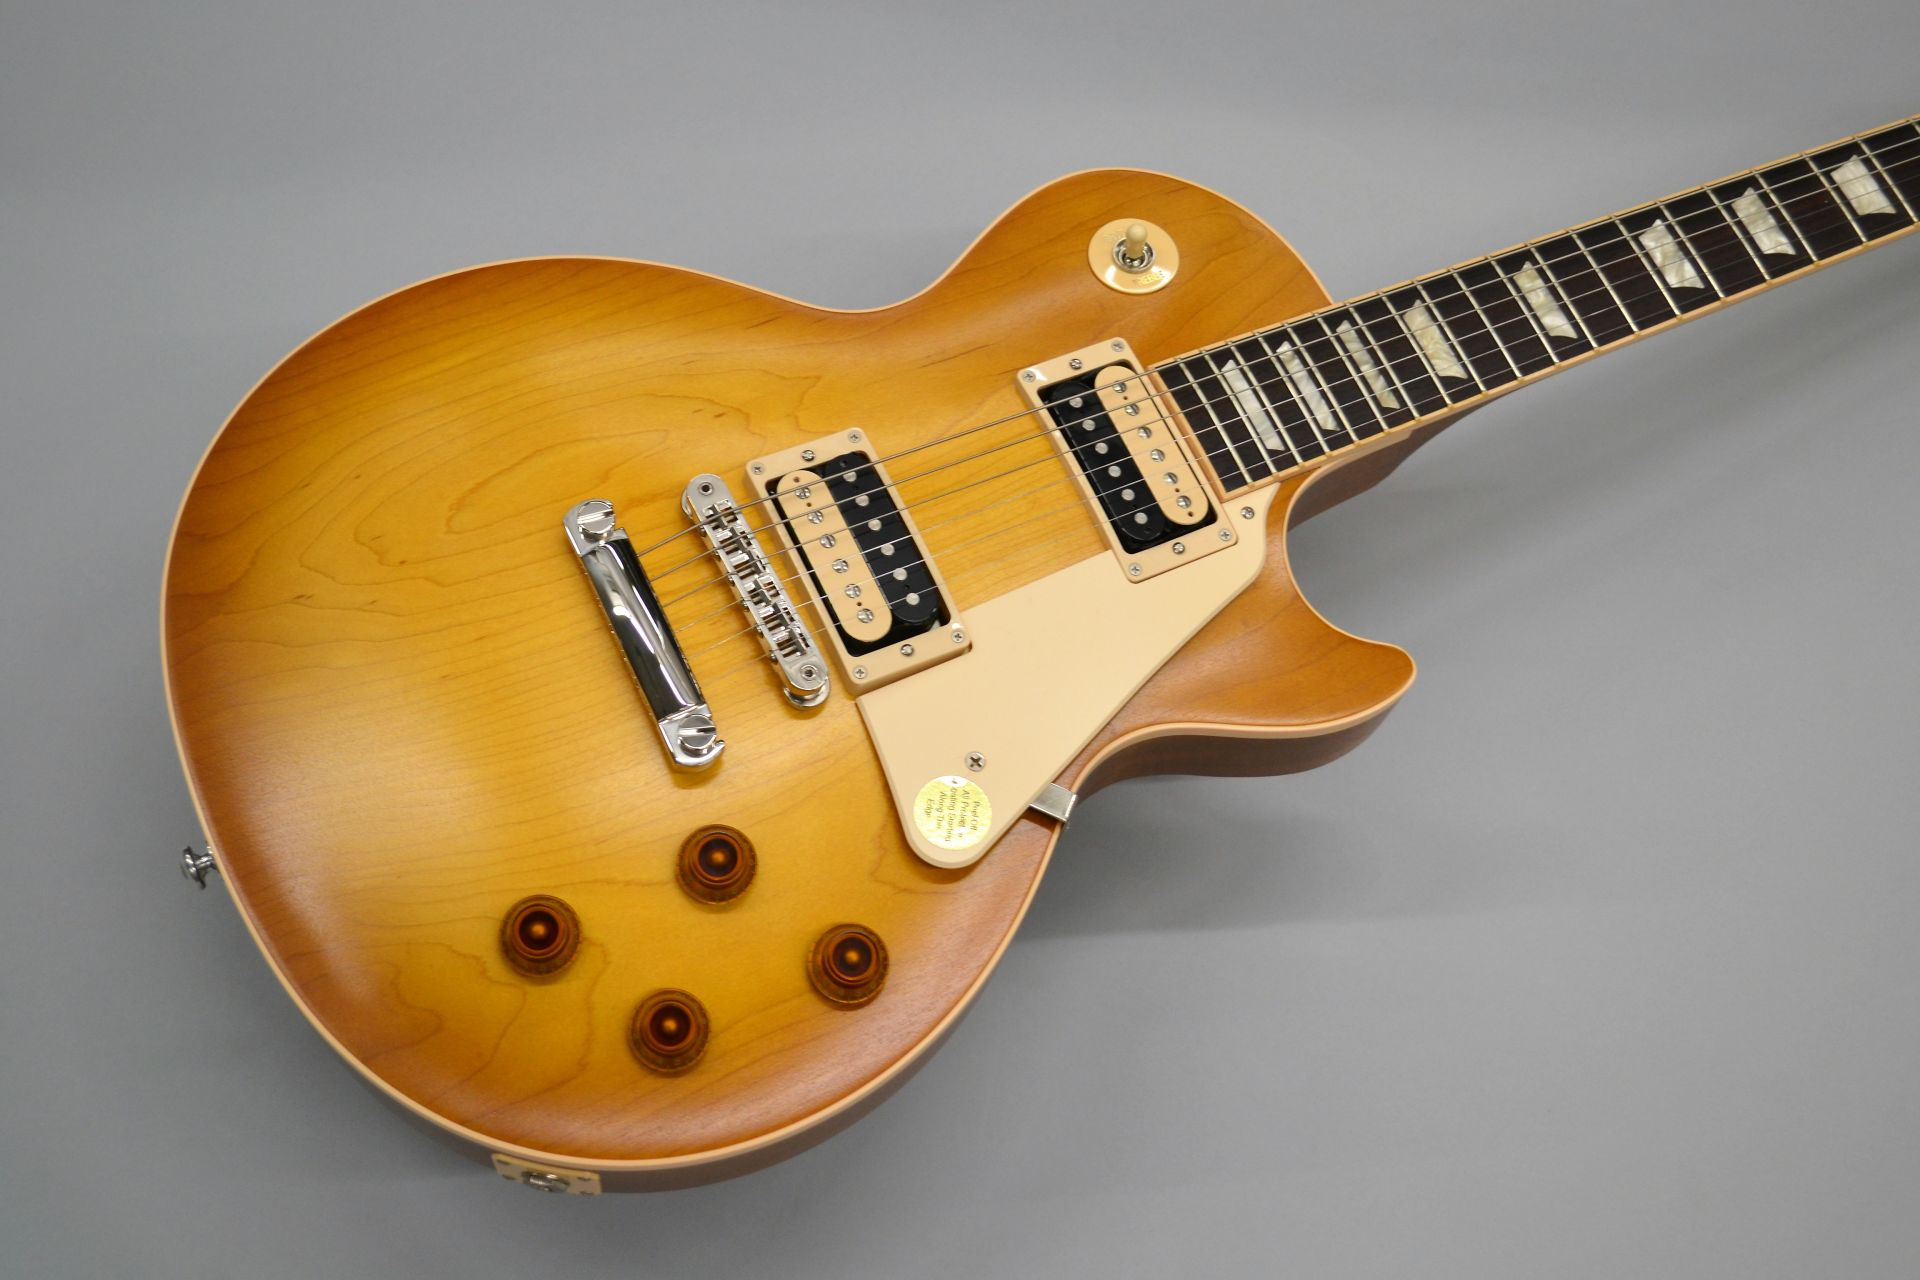 Gibson Les Paul 50s Standard Faded 2016 Limited Faded Honey Burstのボディトップ-アップ画像